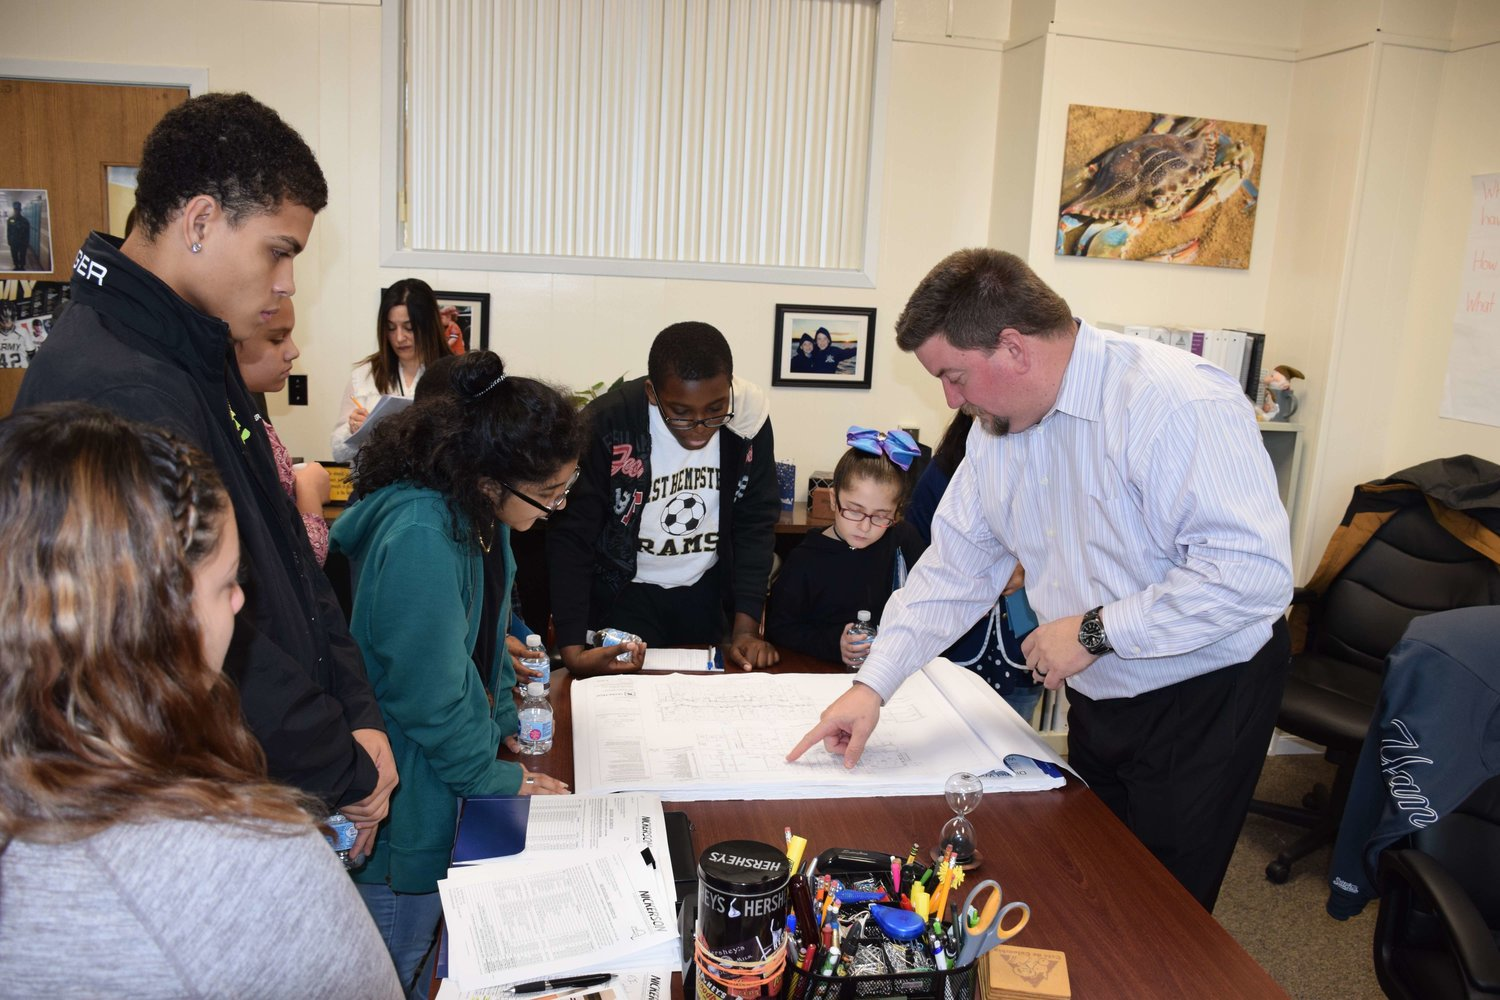 Members of the SSAC got to see diagrams and sketches about potential plans to enhance their school buildings.